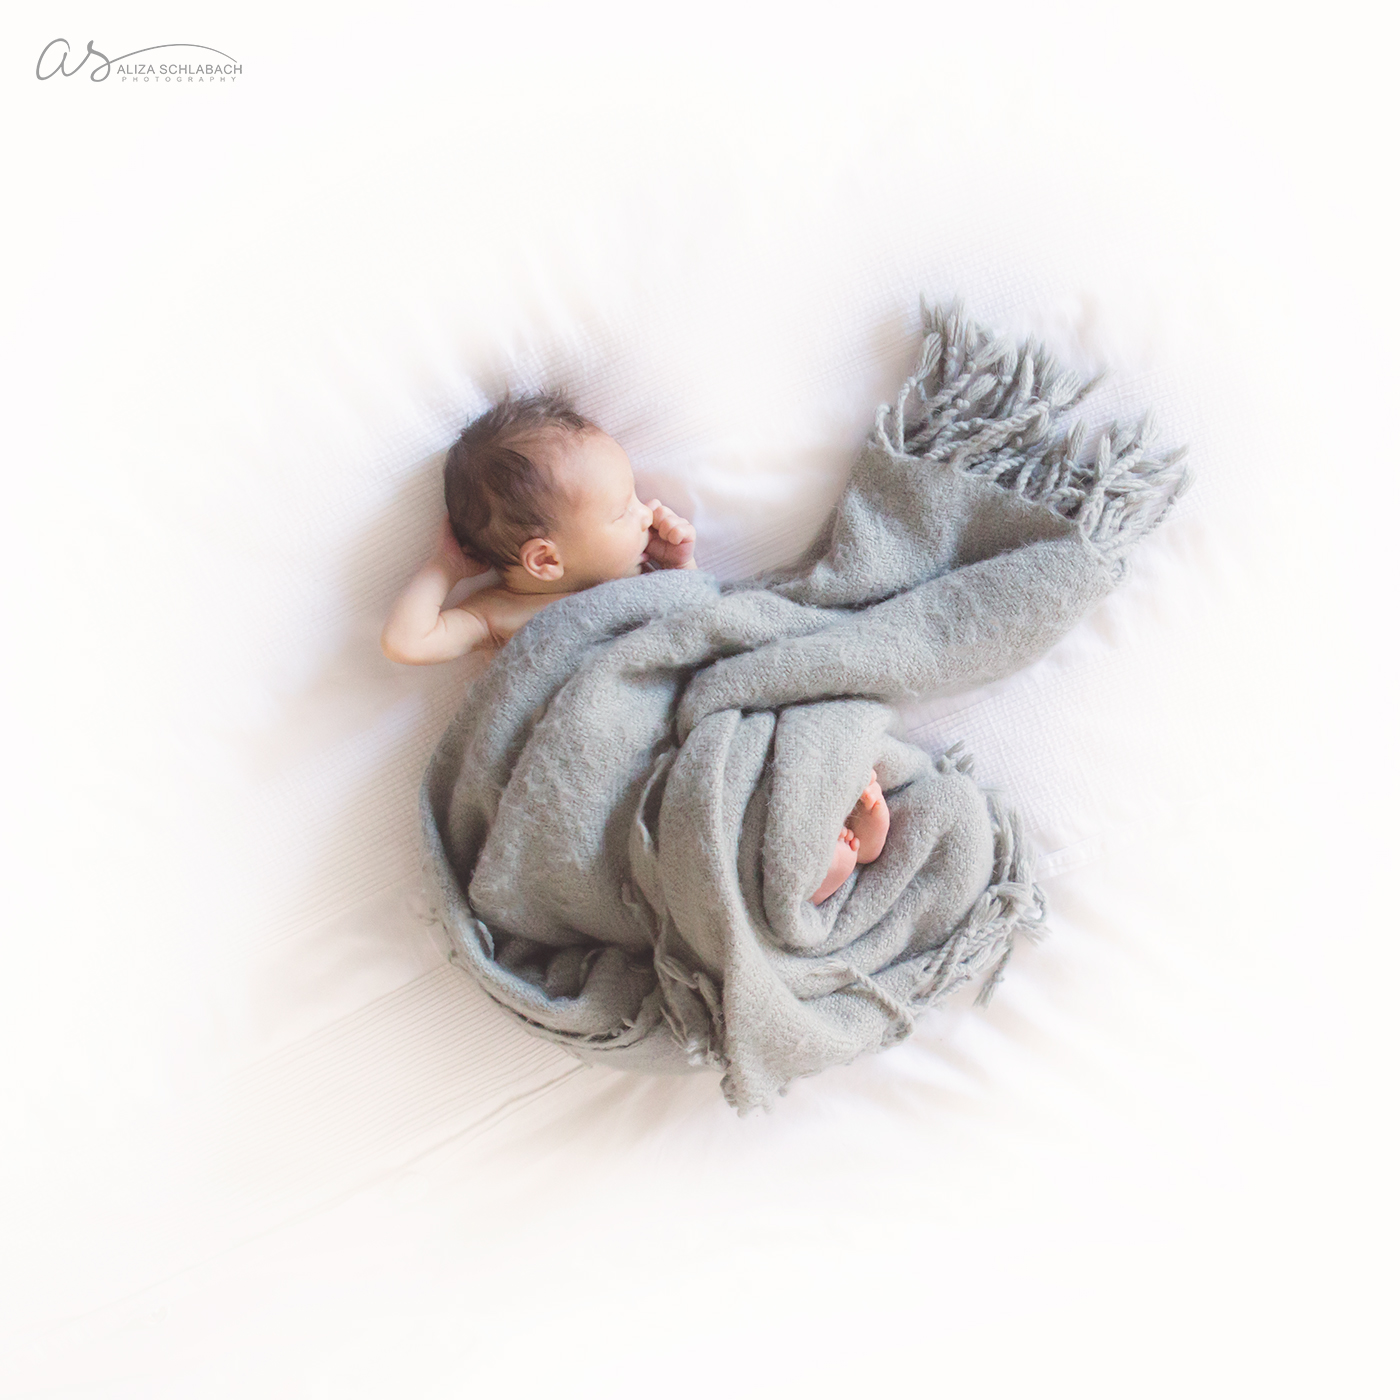 Newborn baby sucking thumb, curled up in a blanked on a white bed